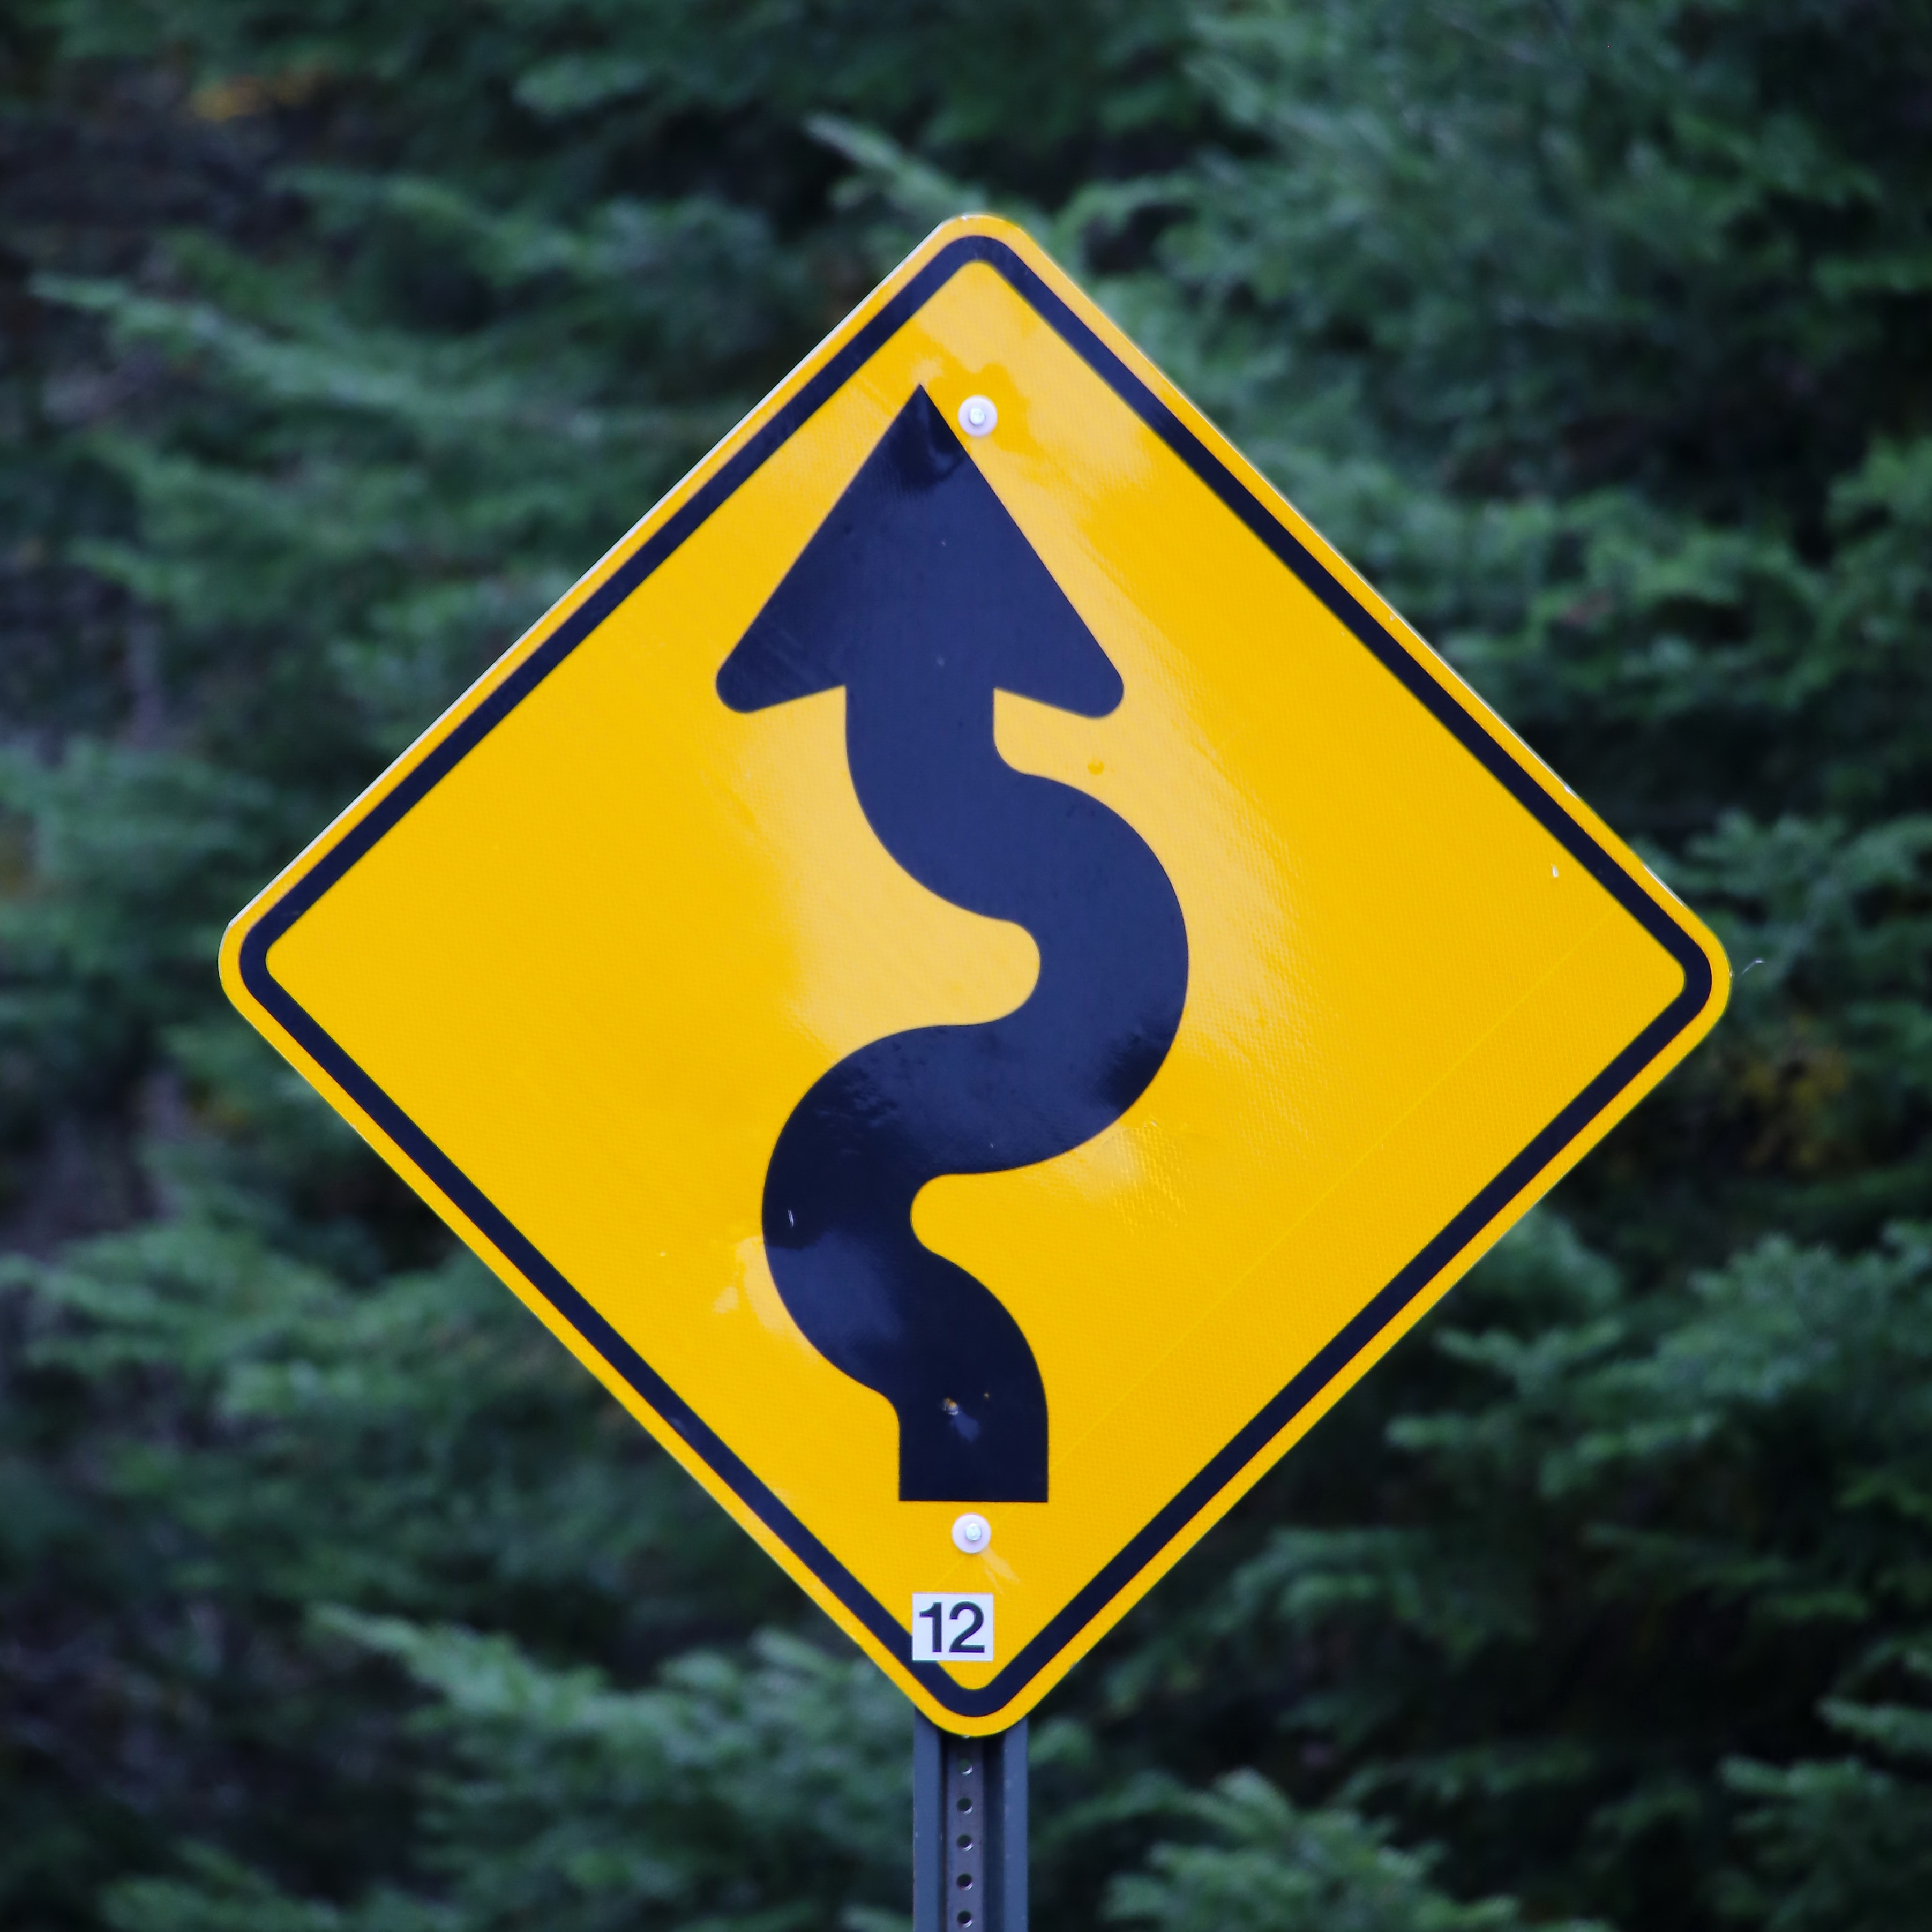 a road sign describing a long and winding road